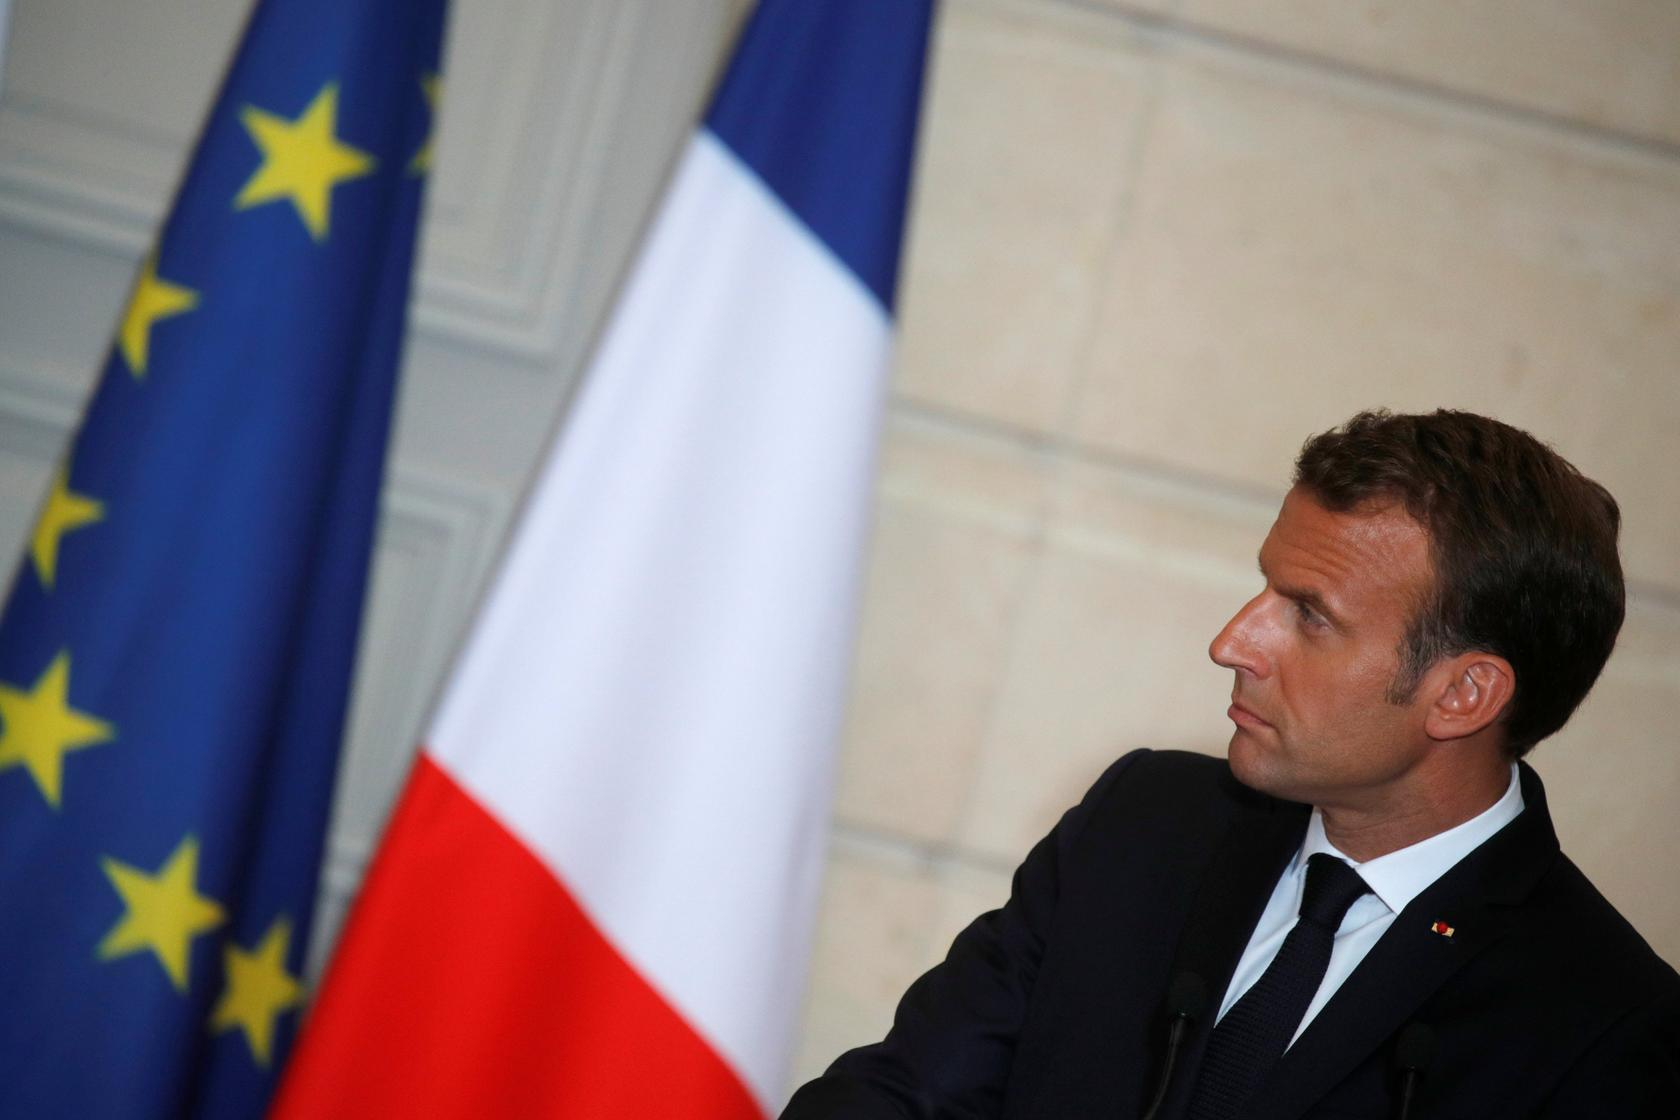 Macron S Campaign Economists Warn French Leader Over Rich Friendly Policies Reuters